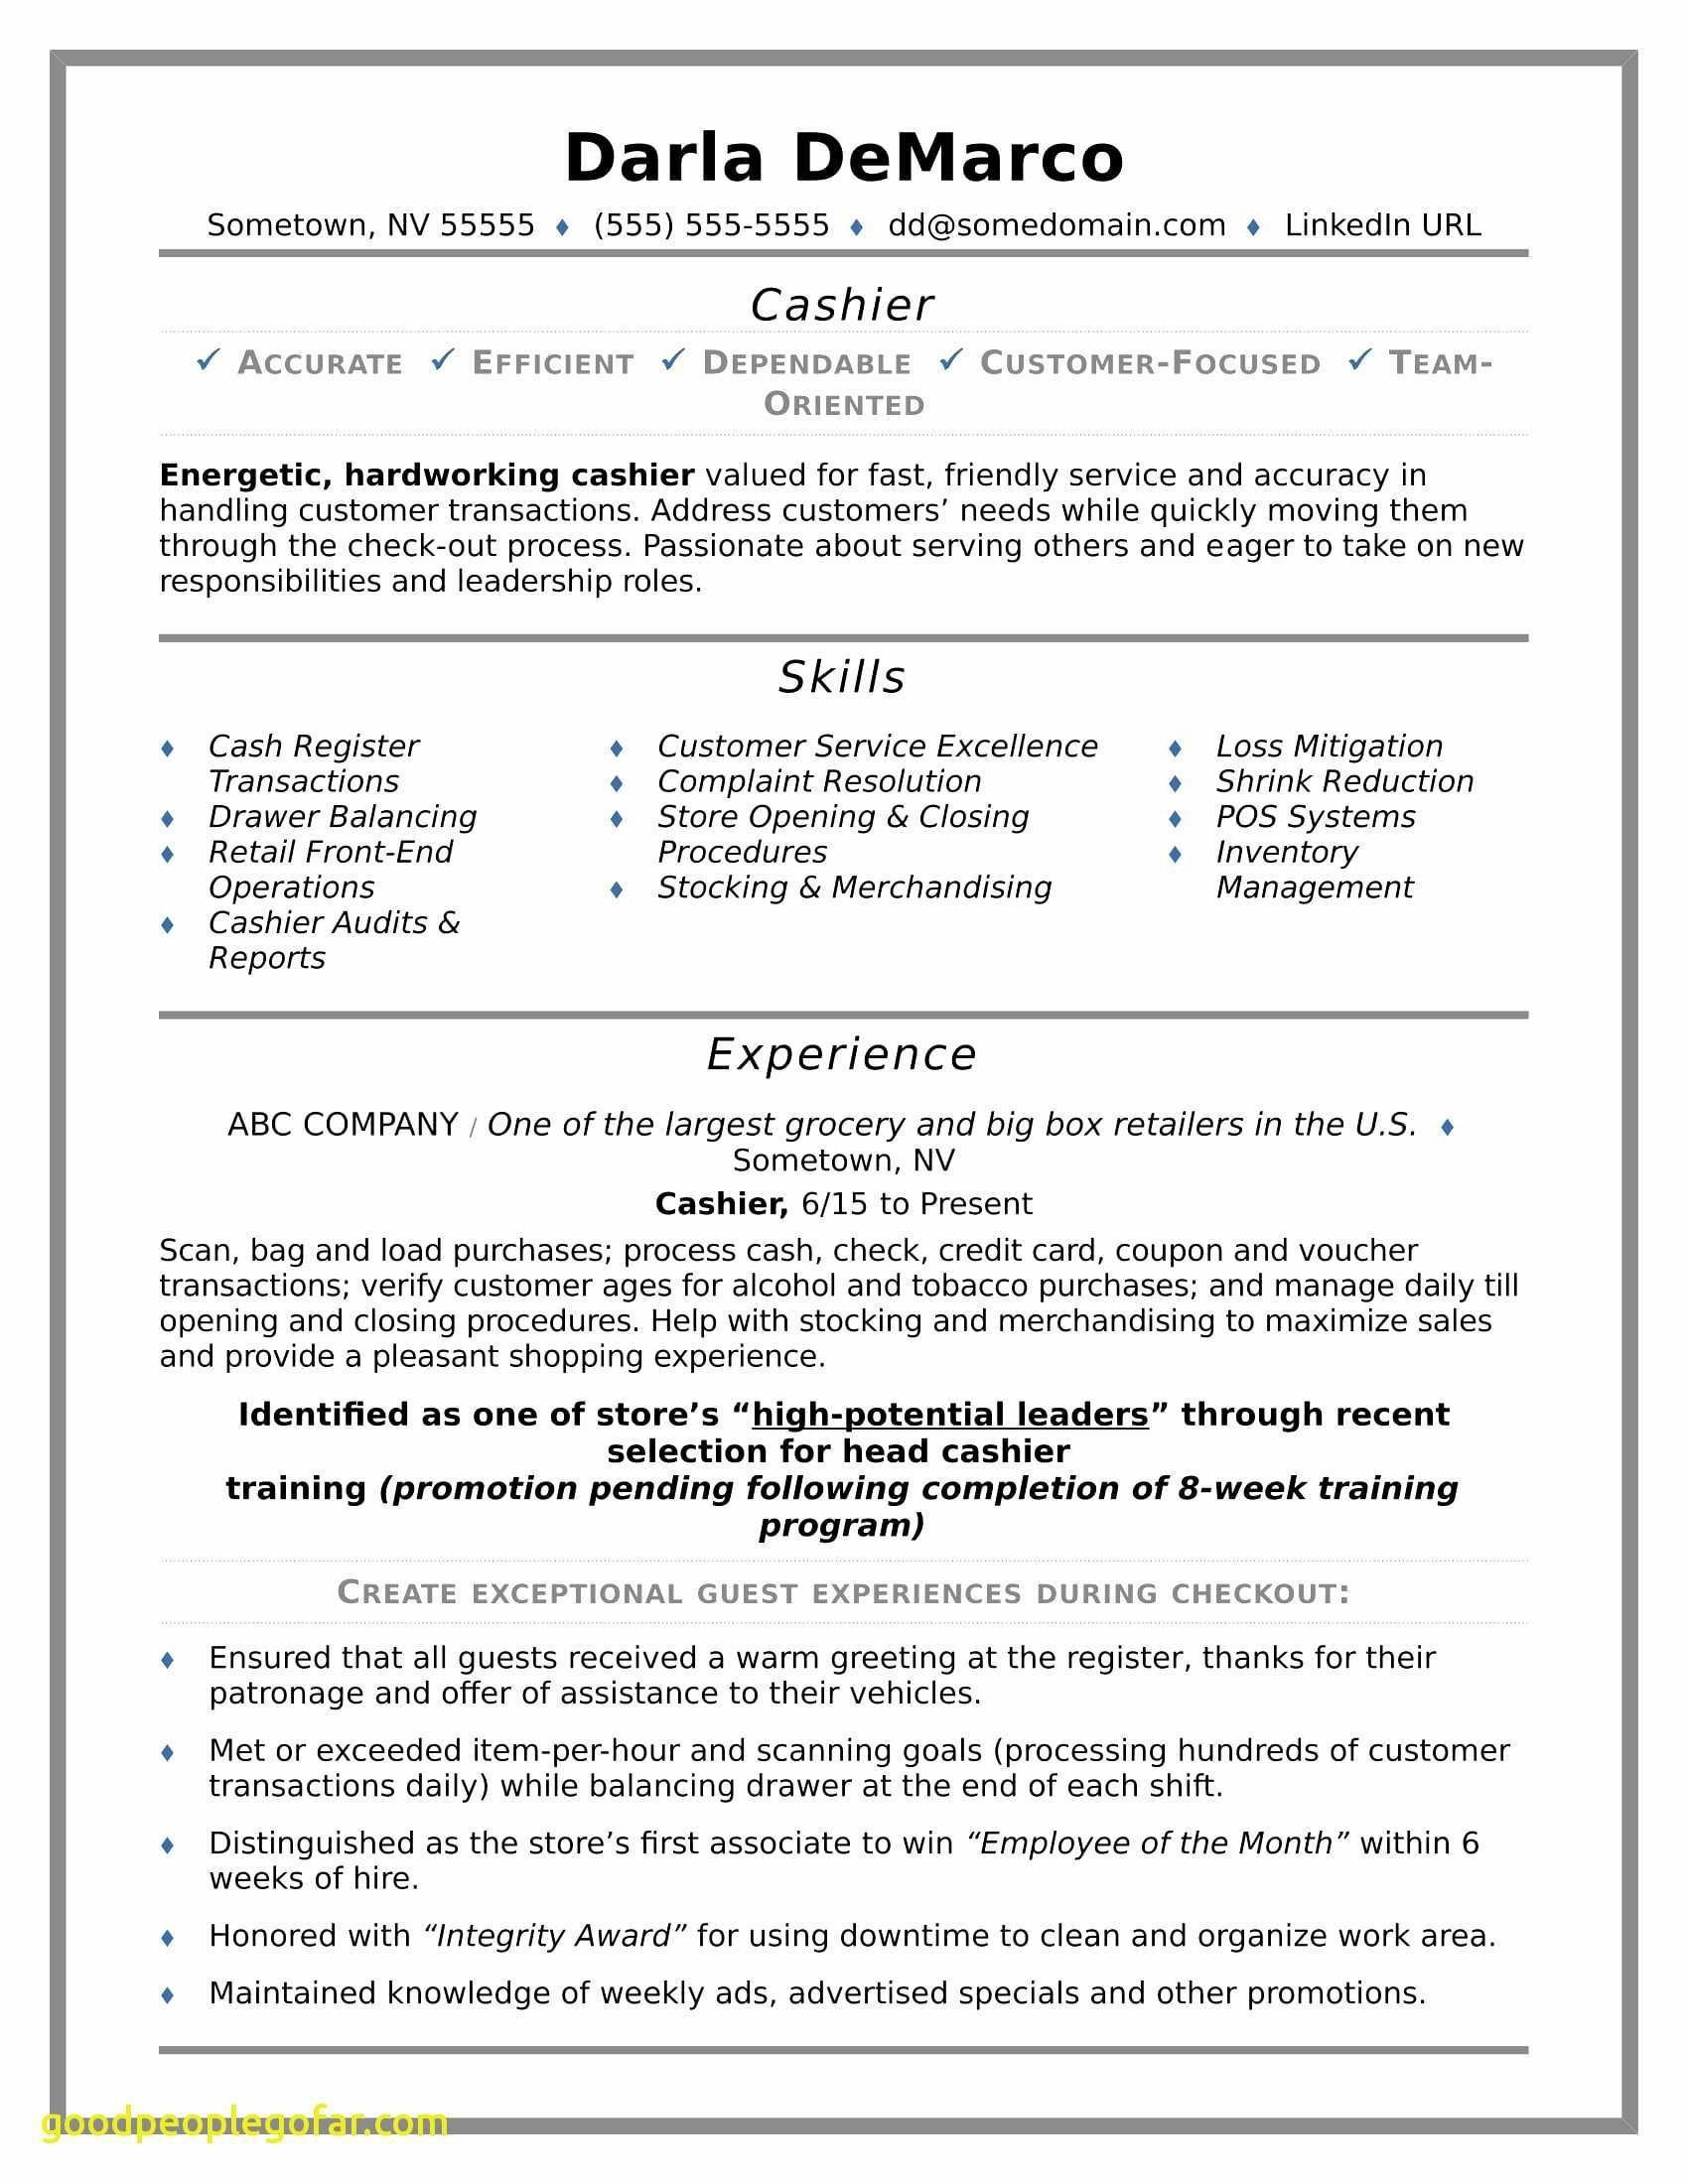 Mini Resume Template - Hand Out Templates Unique Basic Resume Template Luxury Resume Pdf 0d